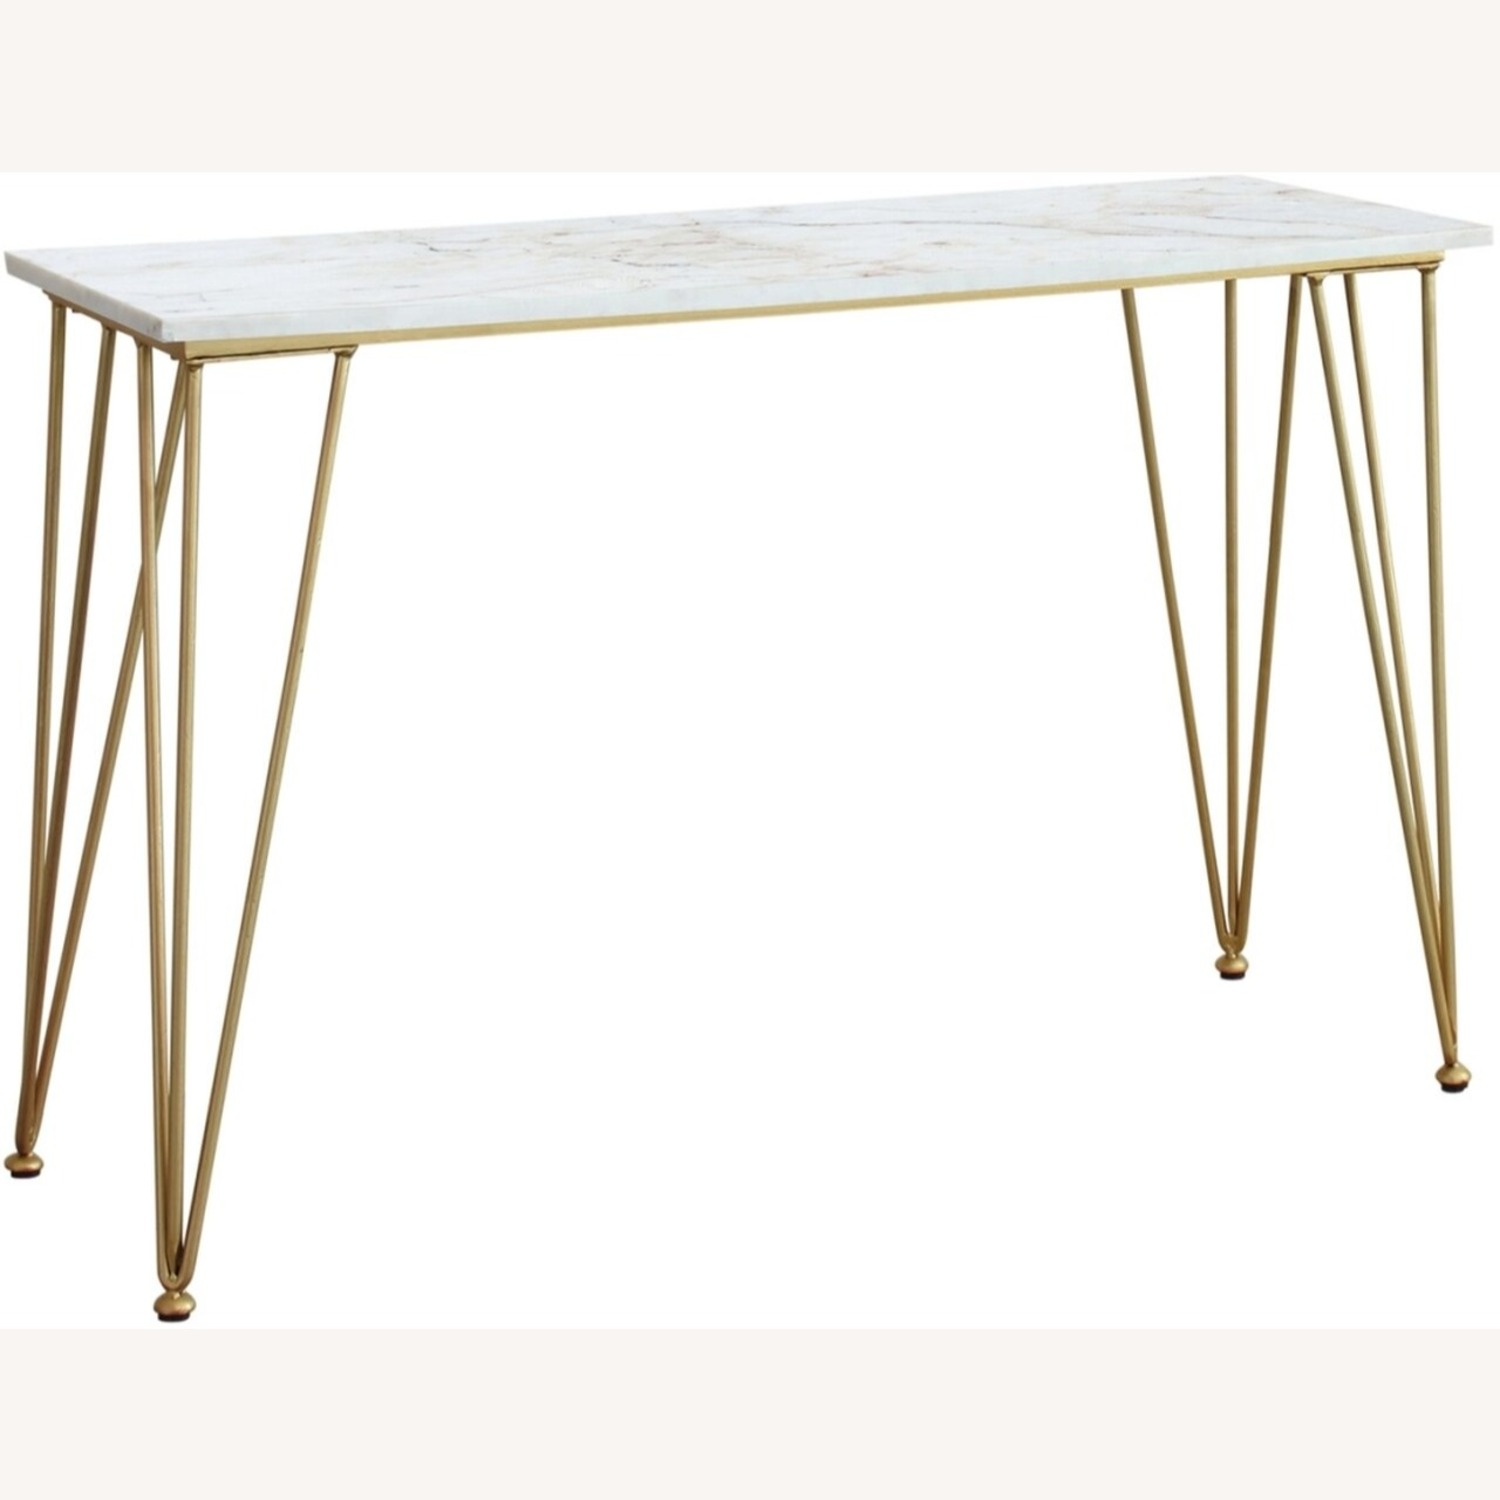 Classic Sofa Table In White Marble Tabletop Finish - image-0